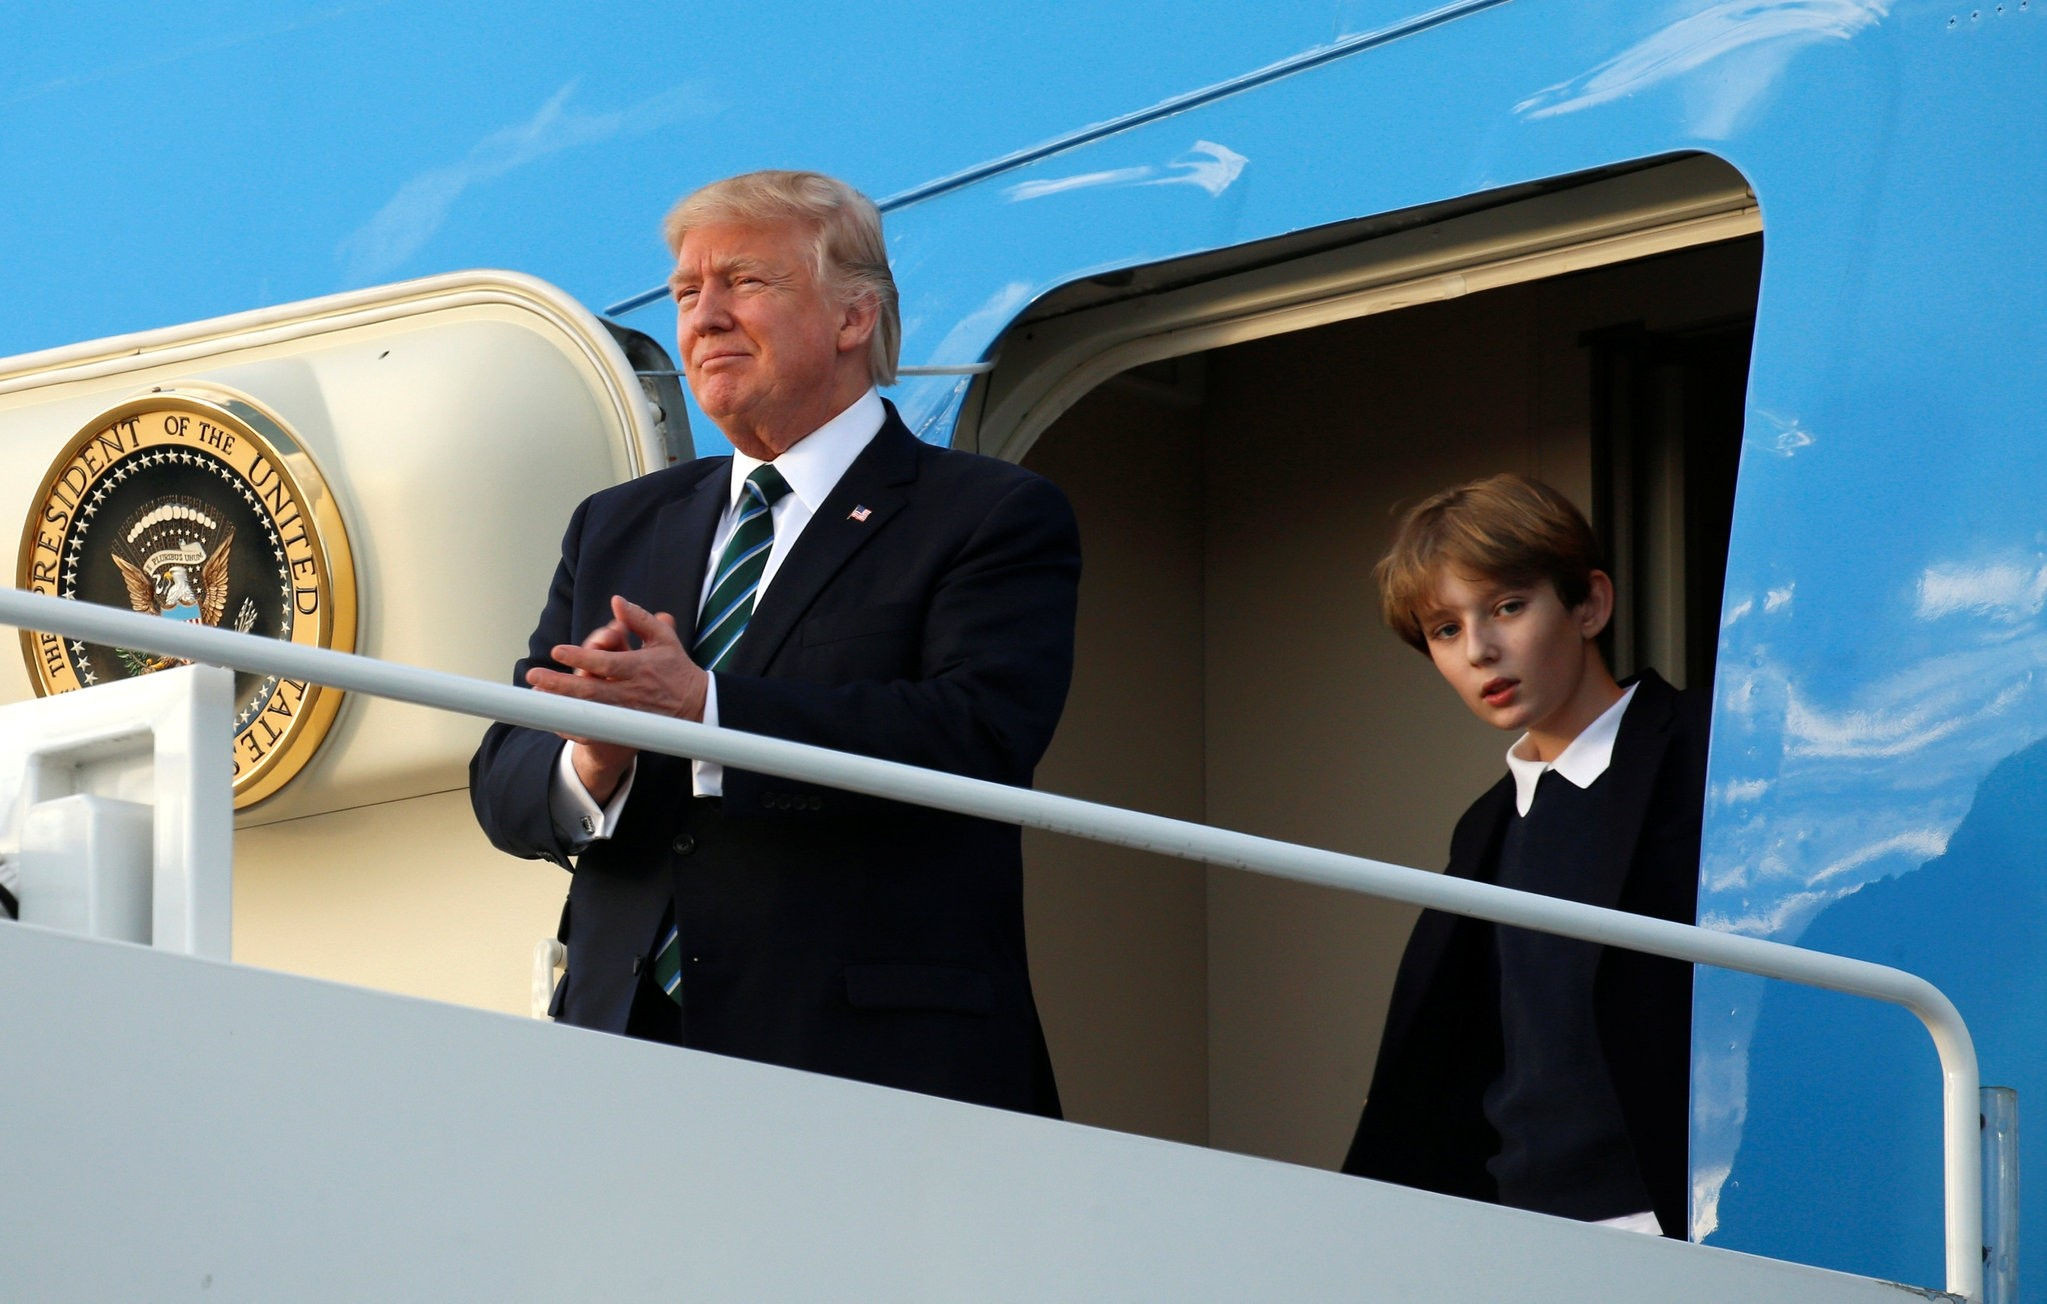 U.S. President Donald Trump and his son Barron step from Air Force One upon their arrival in West Palm Beach, Florida, U.S., March 17, 2017. (REUTERS Photo)